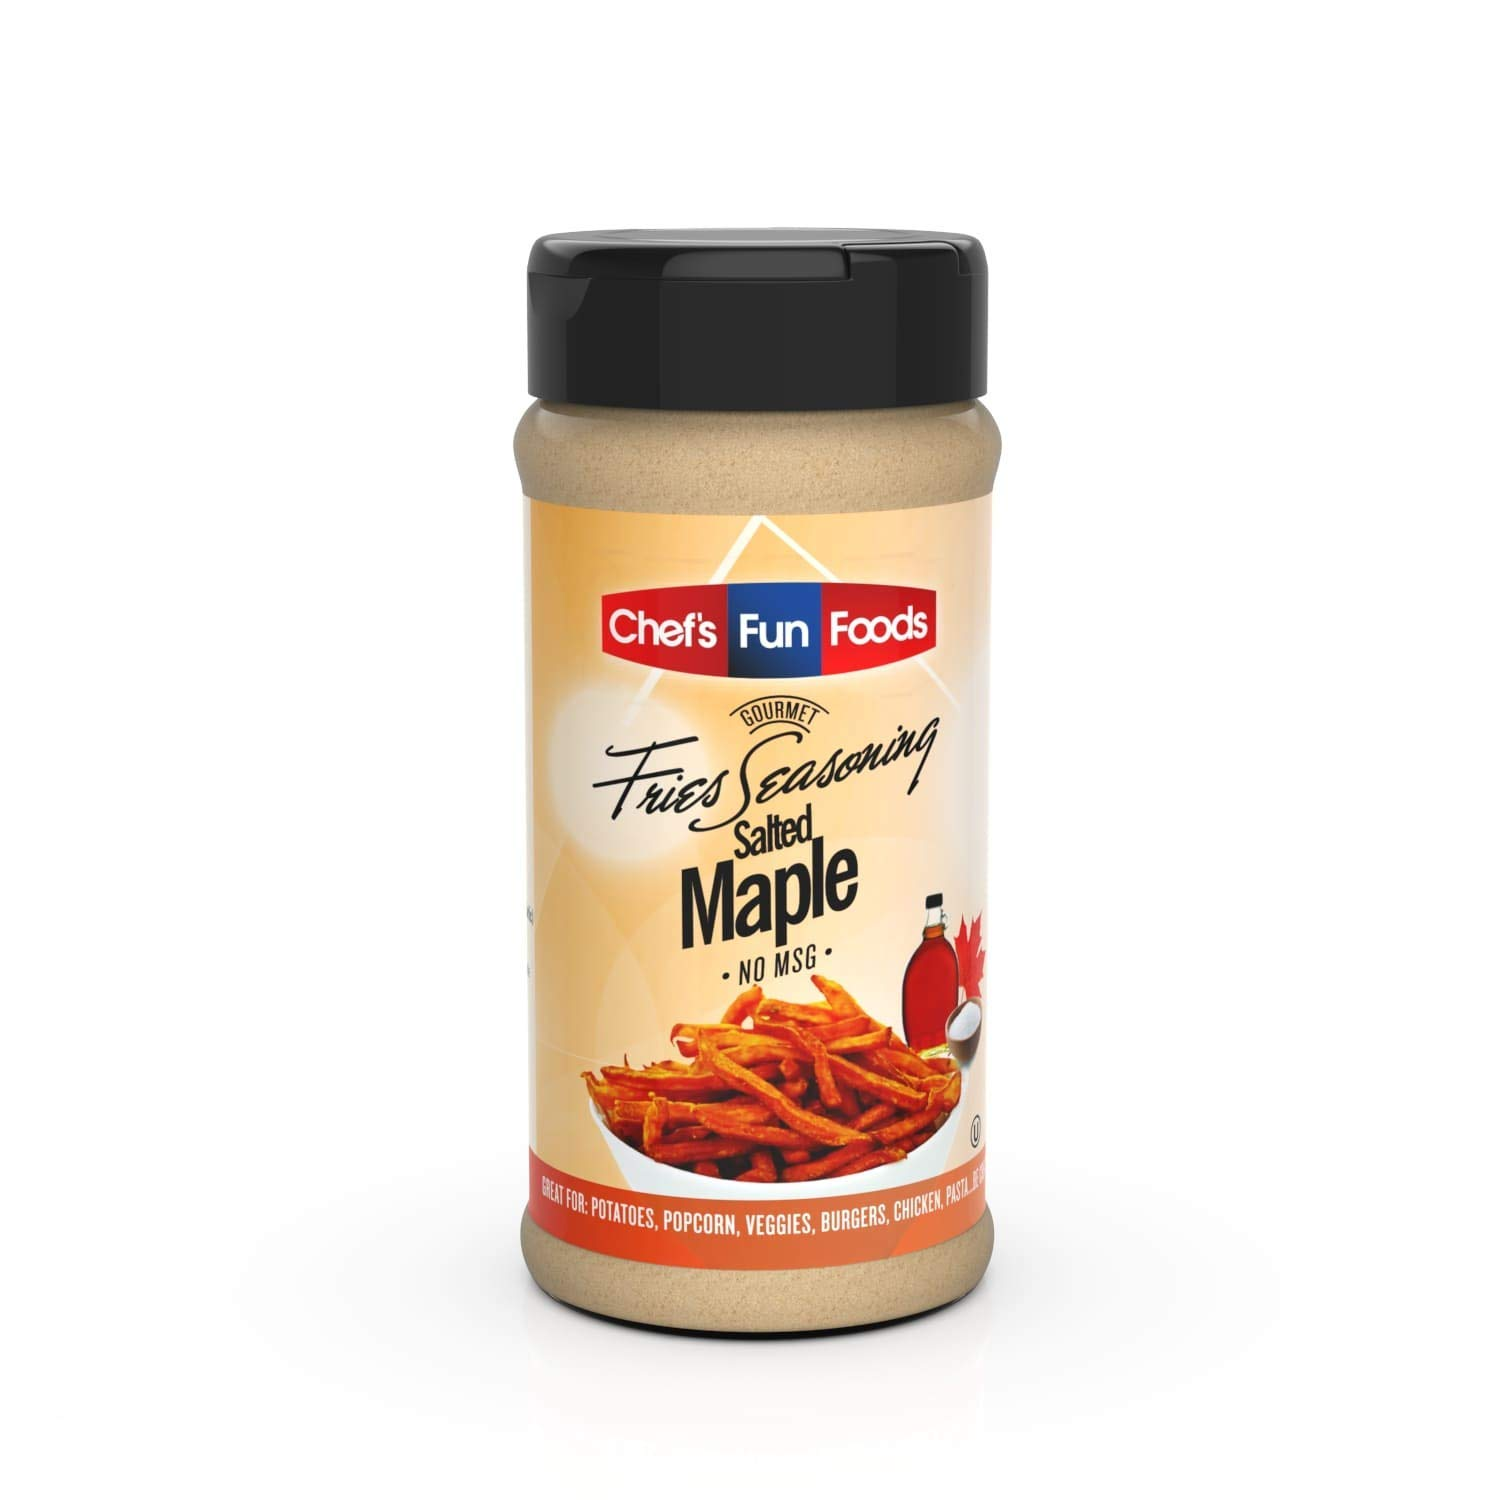 Chef's Fun Foods - Gourmet Fries Seasoning & Rub Mix (Salted Maple Flavor 12 OZ) | Kosher Food for Restaurants and Home Cooks | No MSG or Fillers | Great for Fried Foods, BBQ, Chicken Wings & More